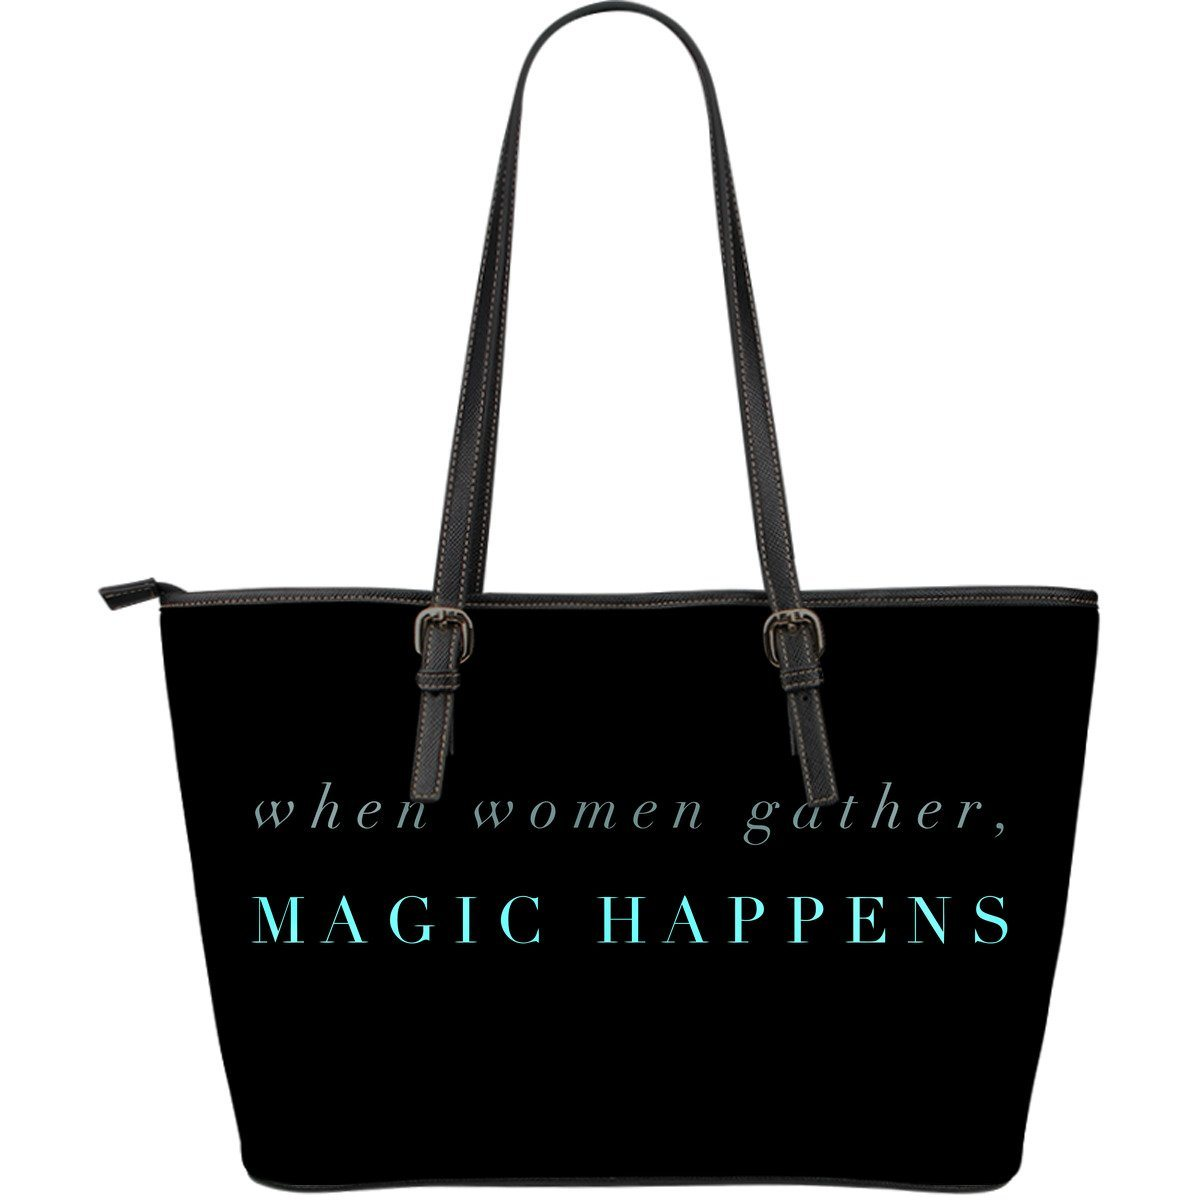 """When women gather, magic happens."" Vegan Leather Bag"